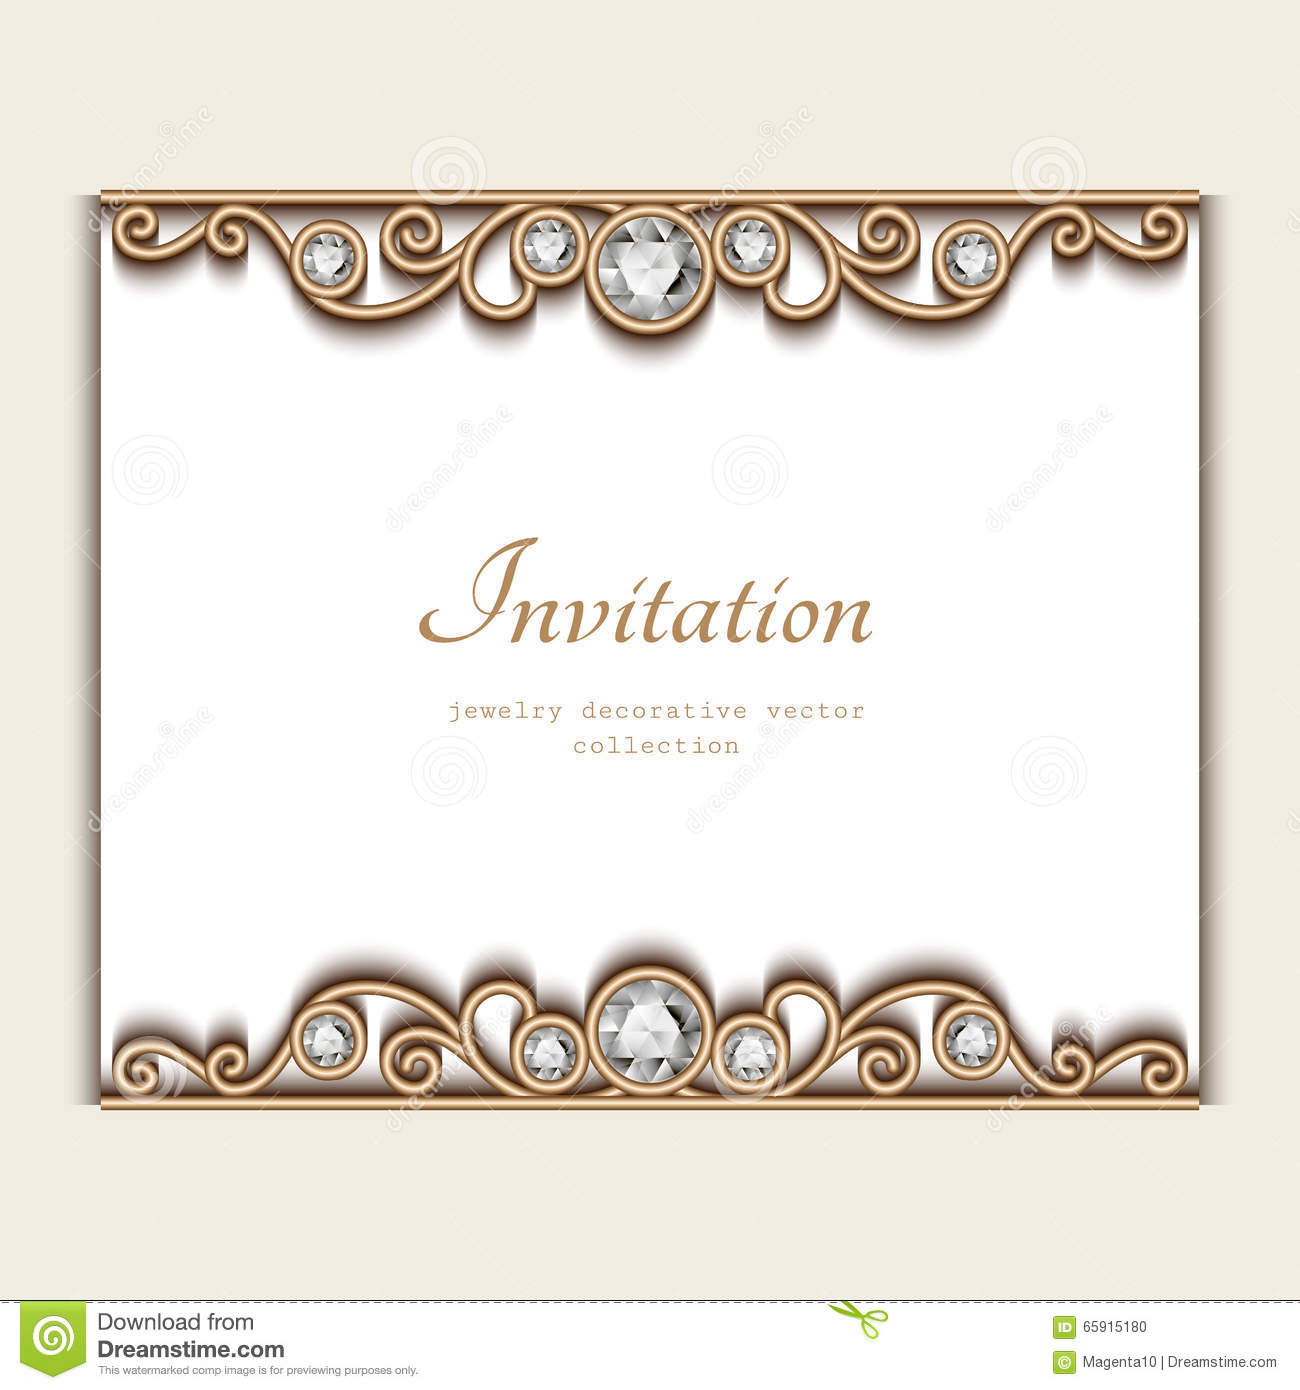 Invitation Cards Ruby Wedding Anniversary Vintage Jewelry Card, Invitation Template Stock Vector